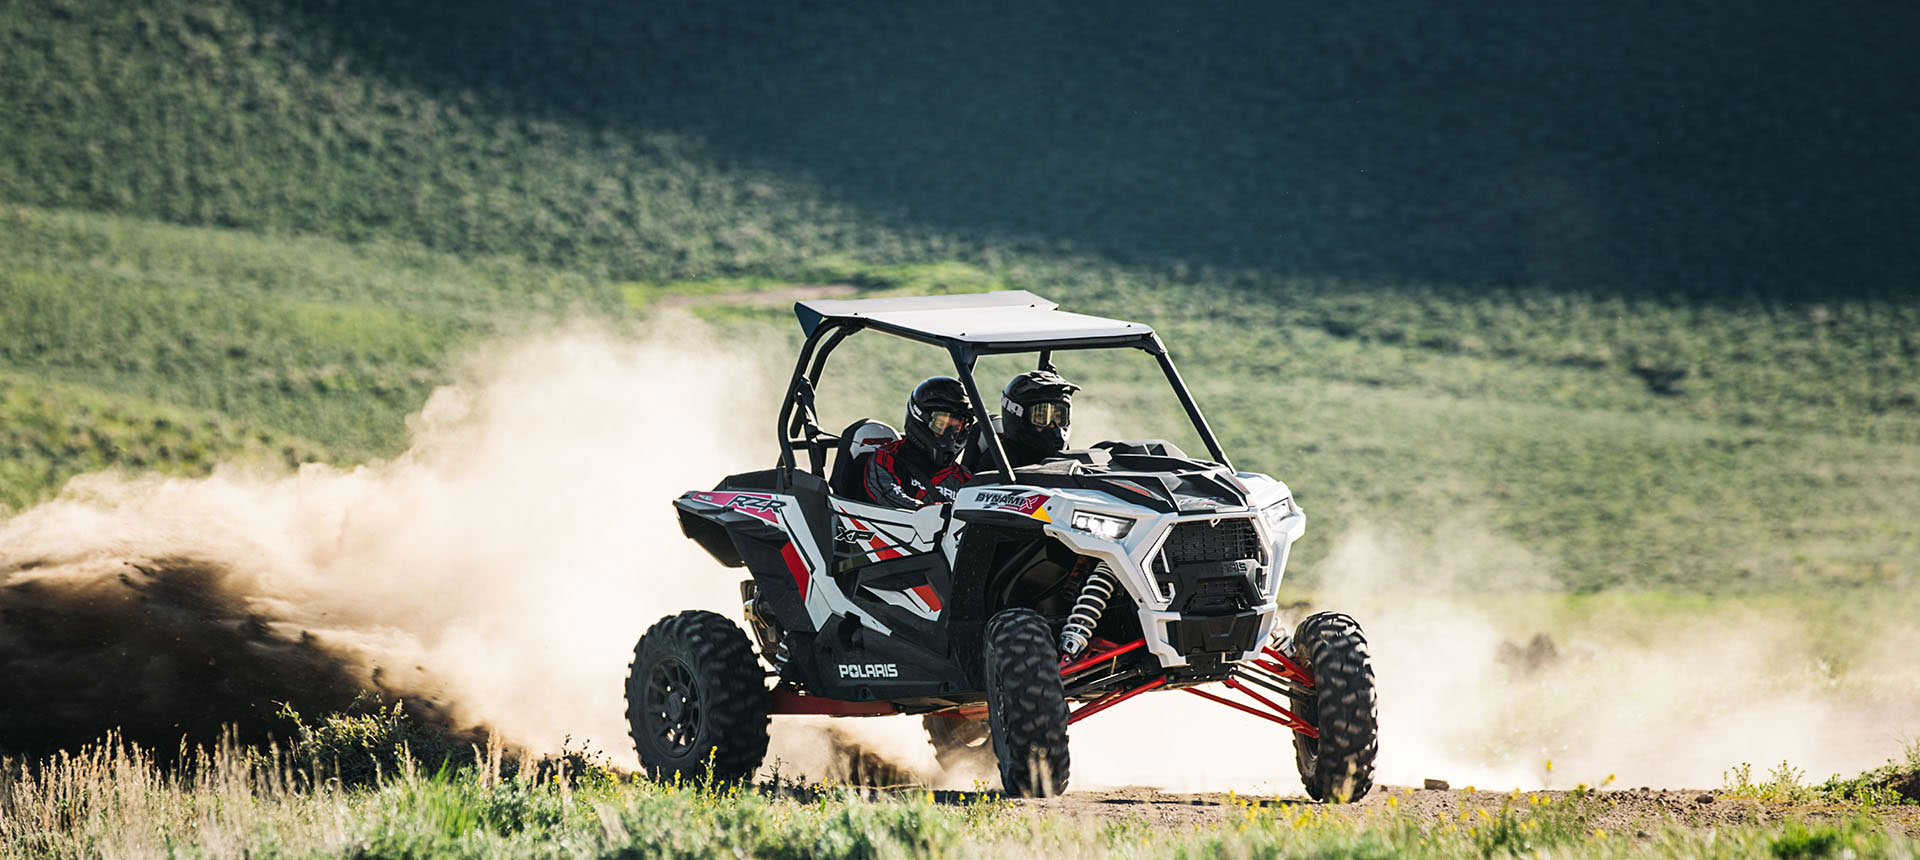 2019 Polaris RZR XP 1000 in Freeport, Florida - Photo 3